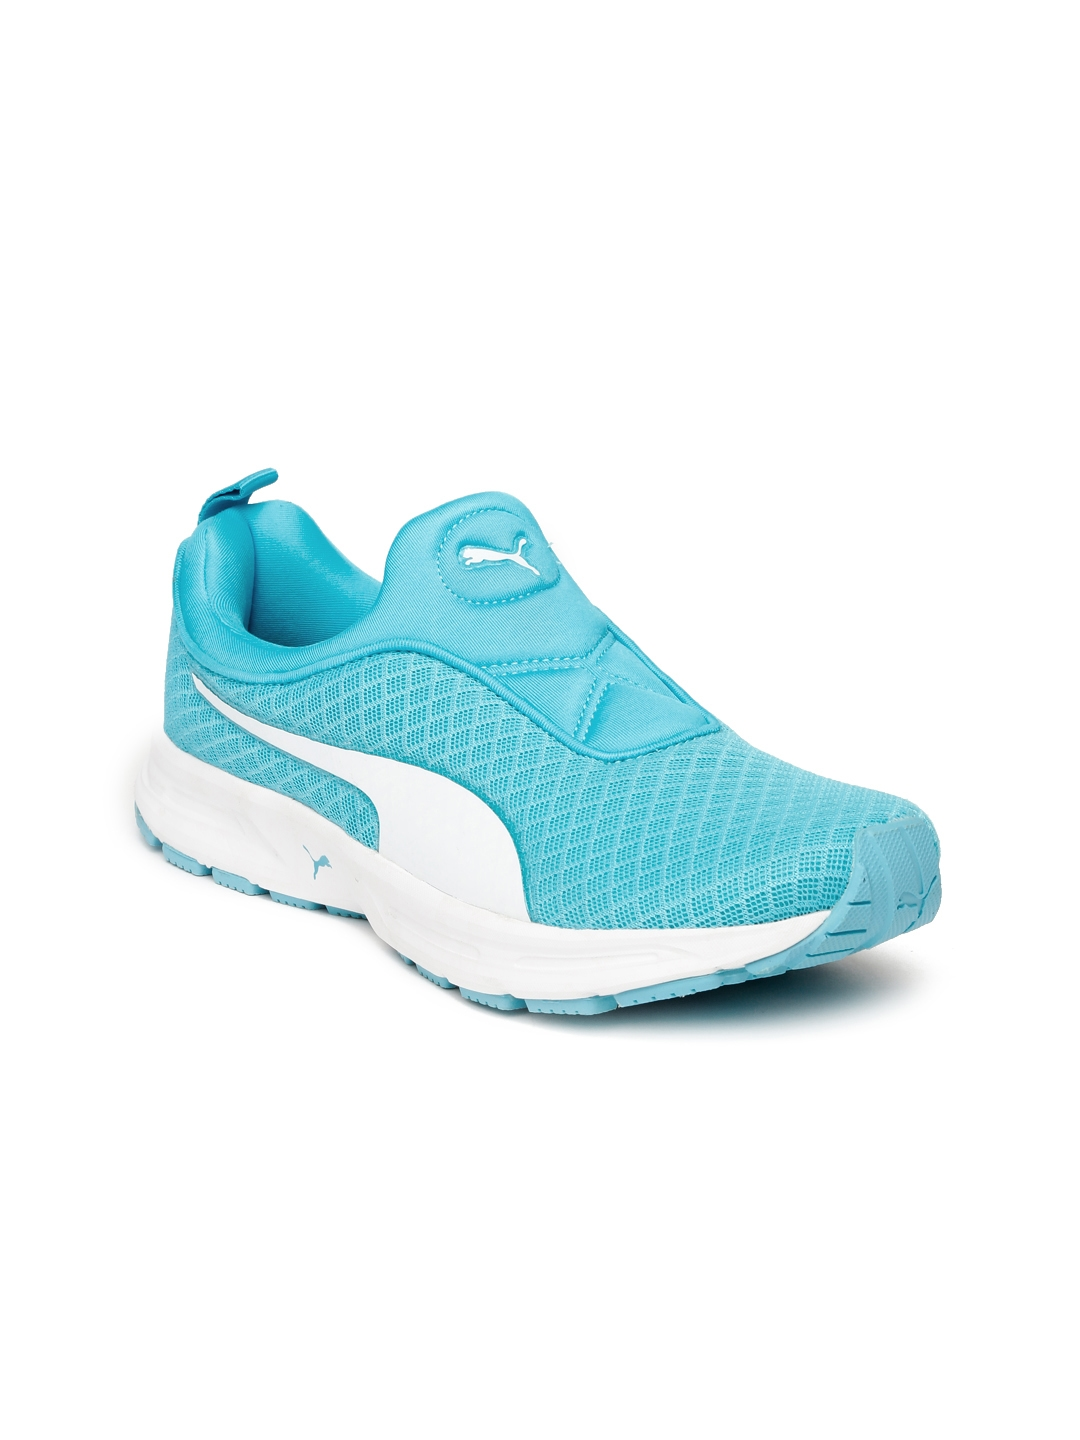 Buy Puma Women Turquoise Blue Burst Slip On IDP Running Shoes ... b6bc25f695b1